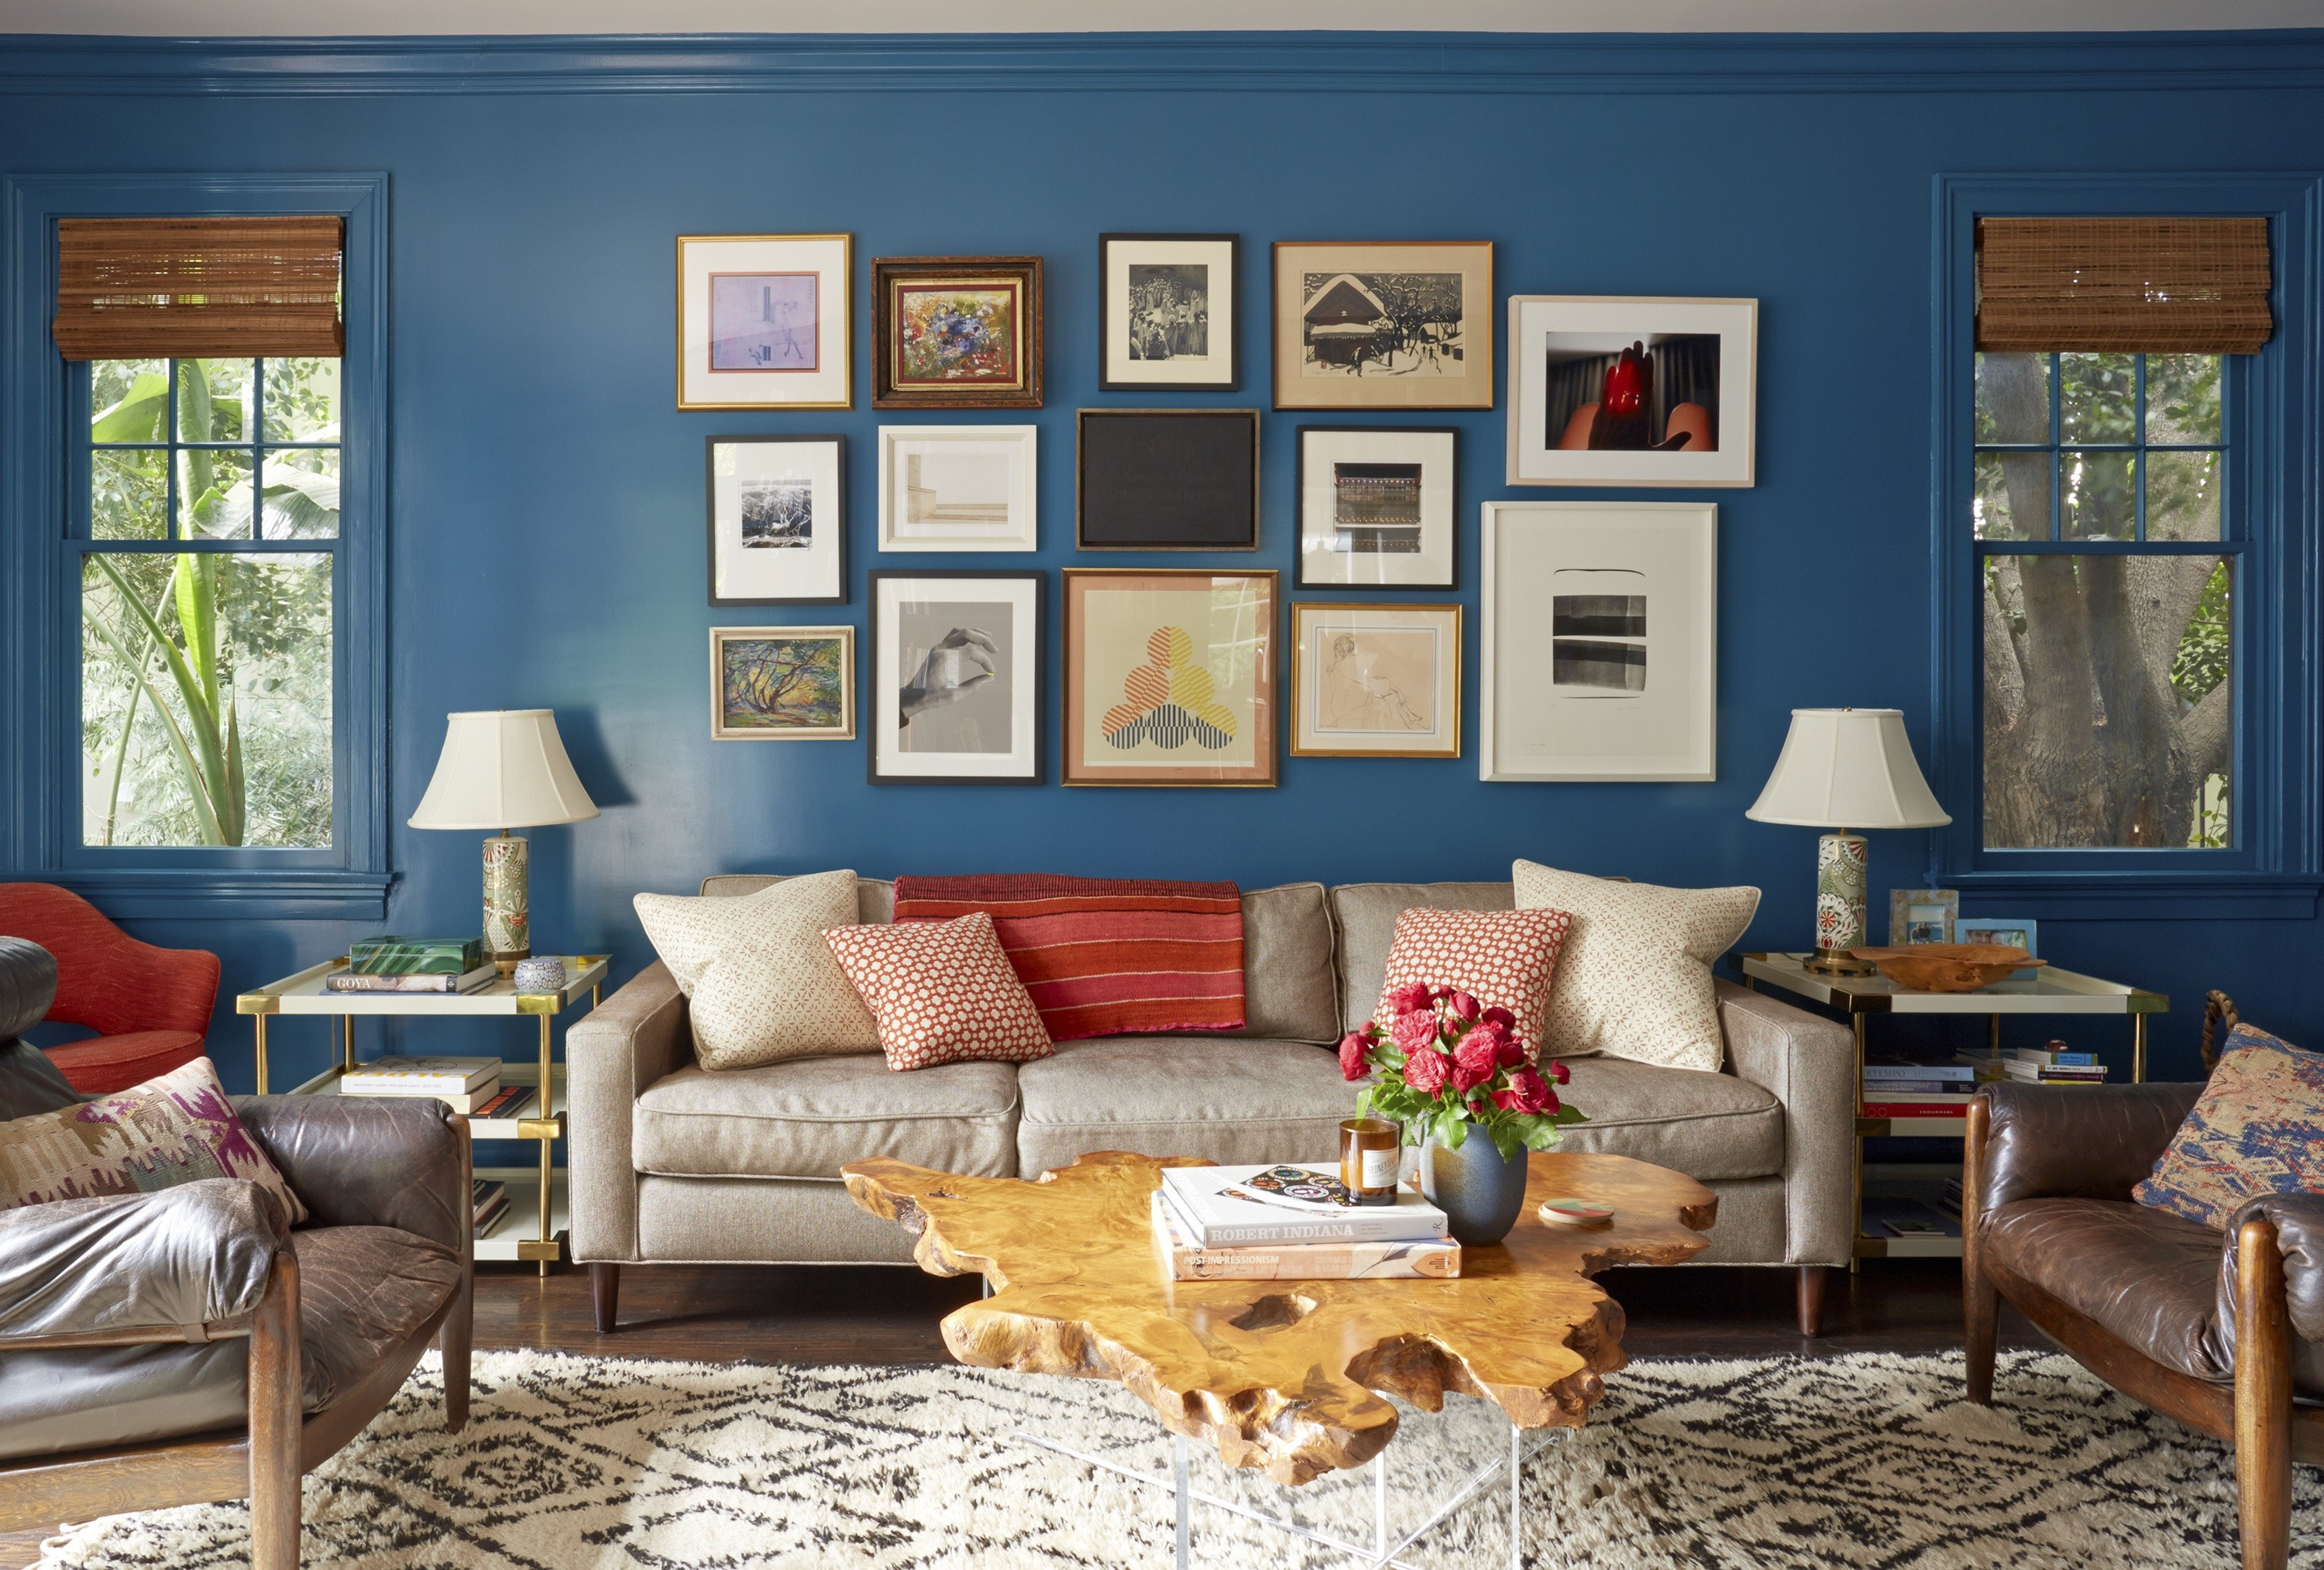 Best ideas about Living Room Candidate . Save or Pin The Living Room Candidate 90 with The Living Room Now.